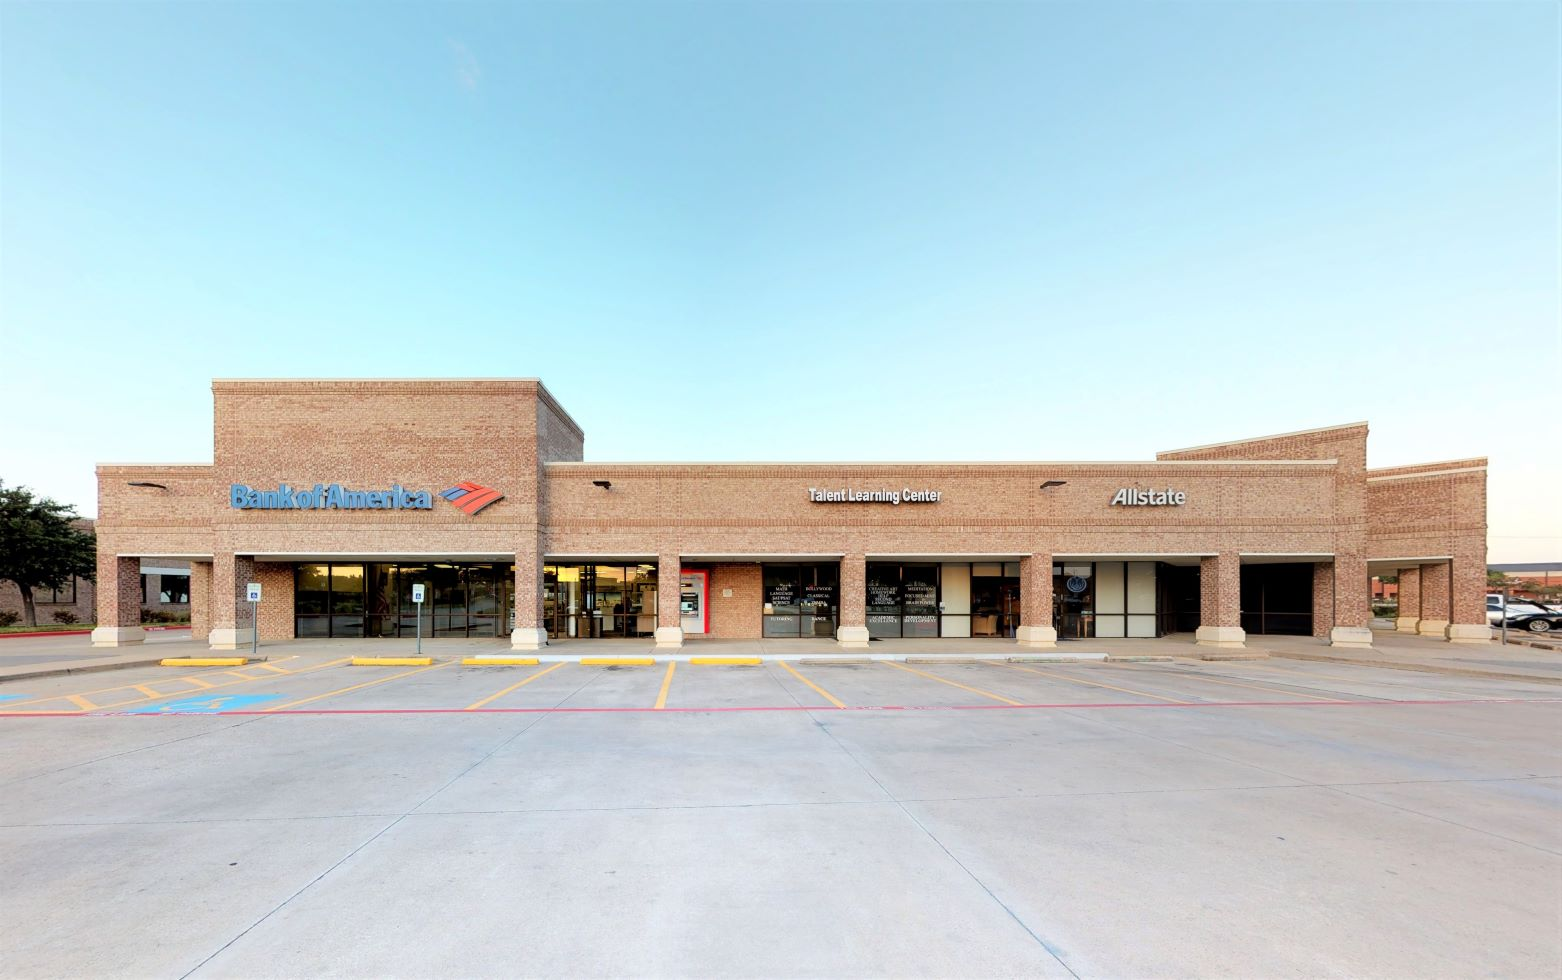 Bank of America financial center with drive-thru ATM | 780 S MacArthur Blvd, Coppell, TX 75019